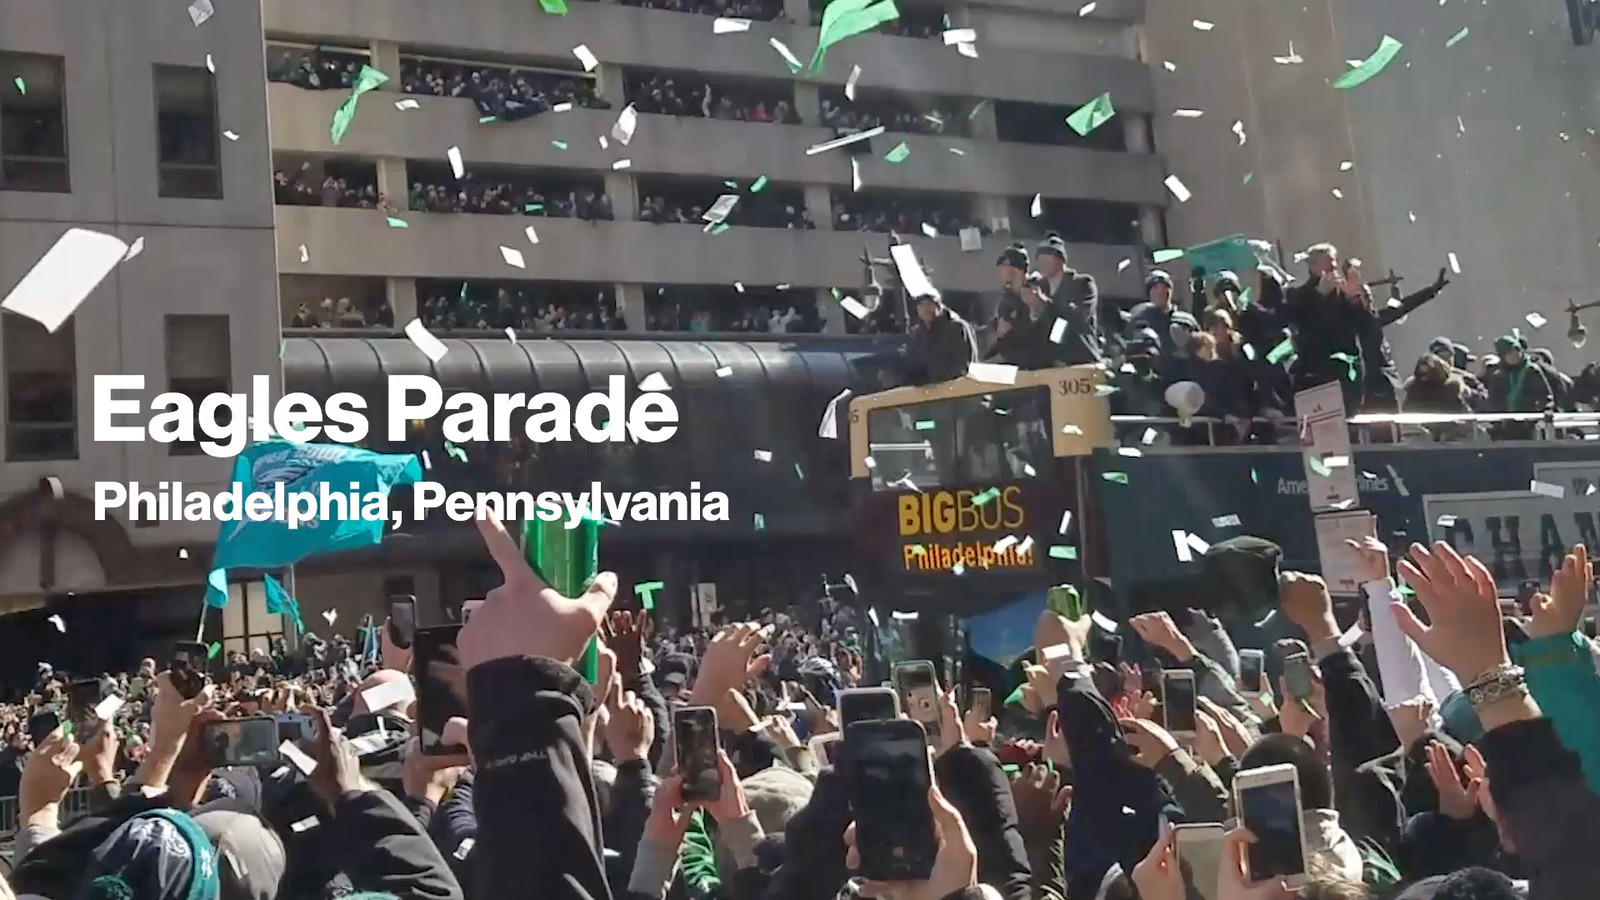 Eagles Parade - Best for a Good Reason Video